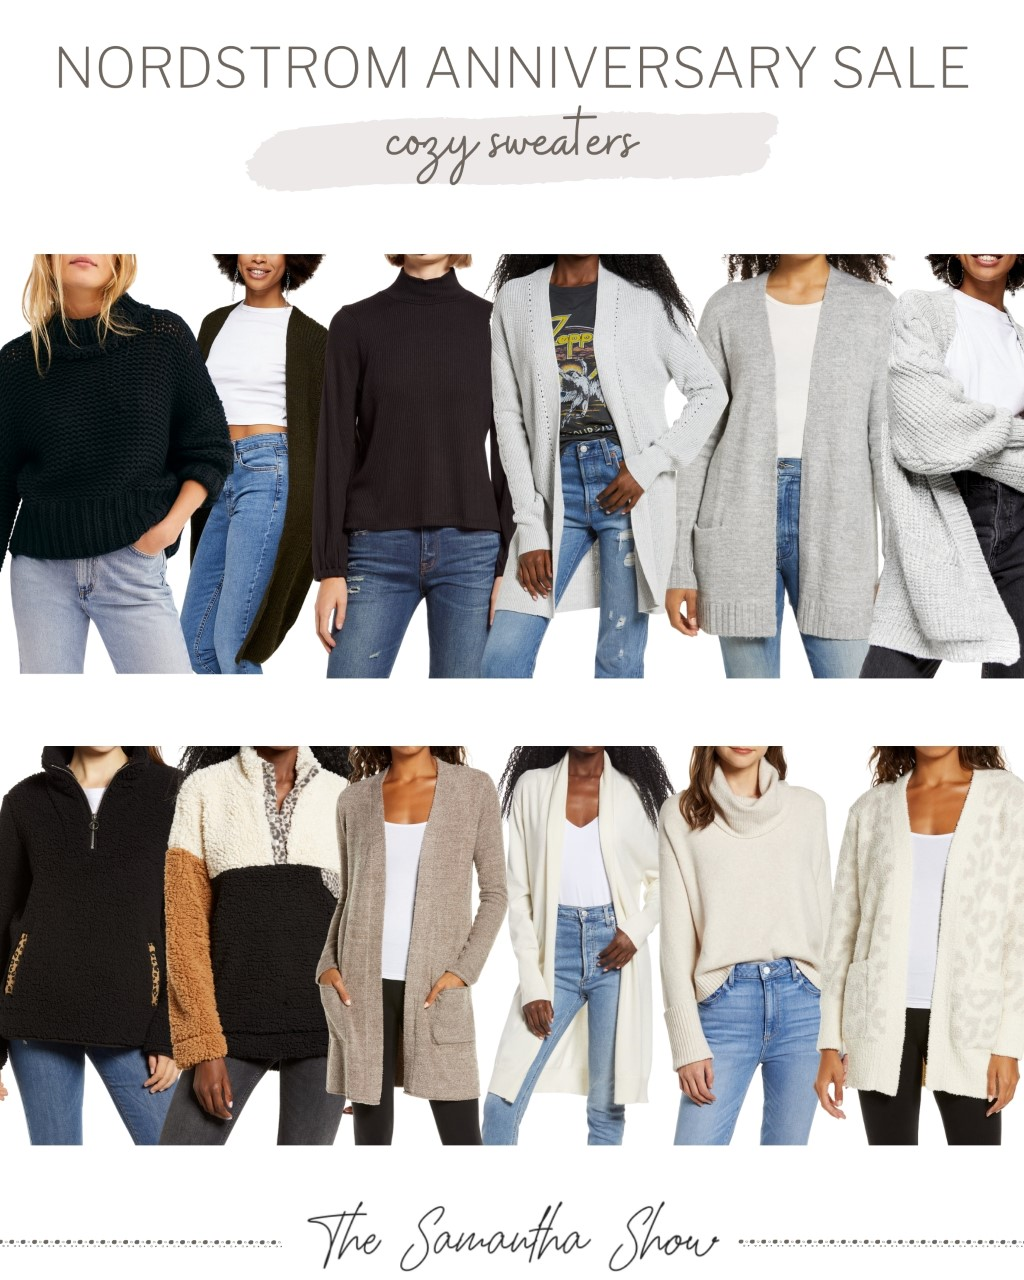 Nordstrom Anniversary Sale: Cozy Sweaters